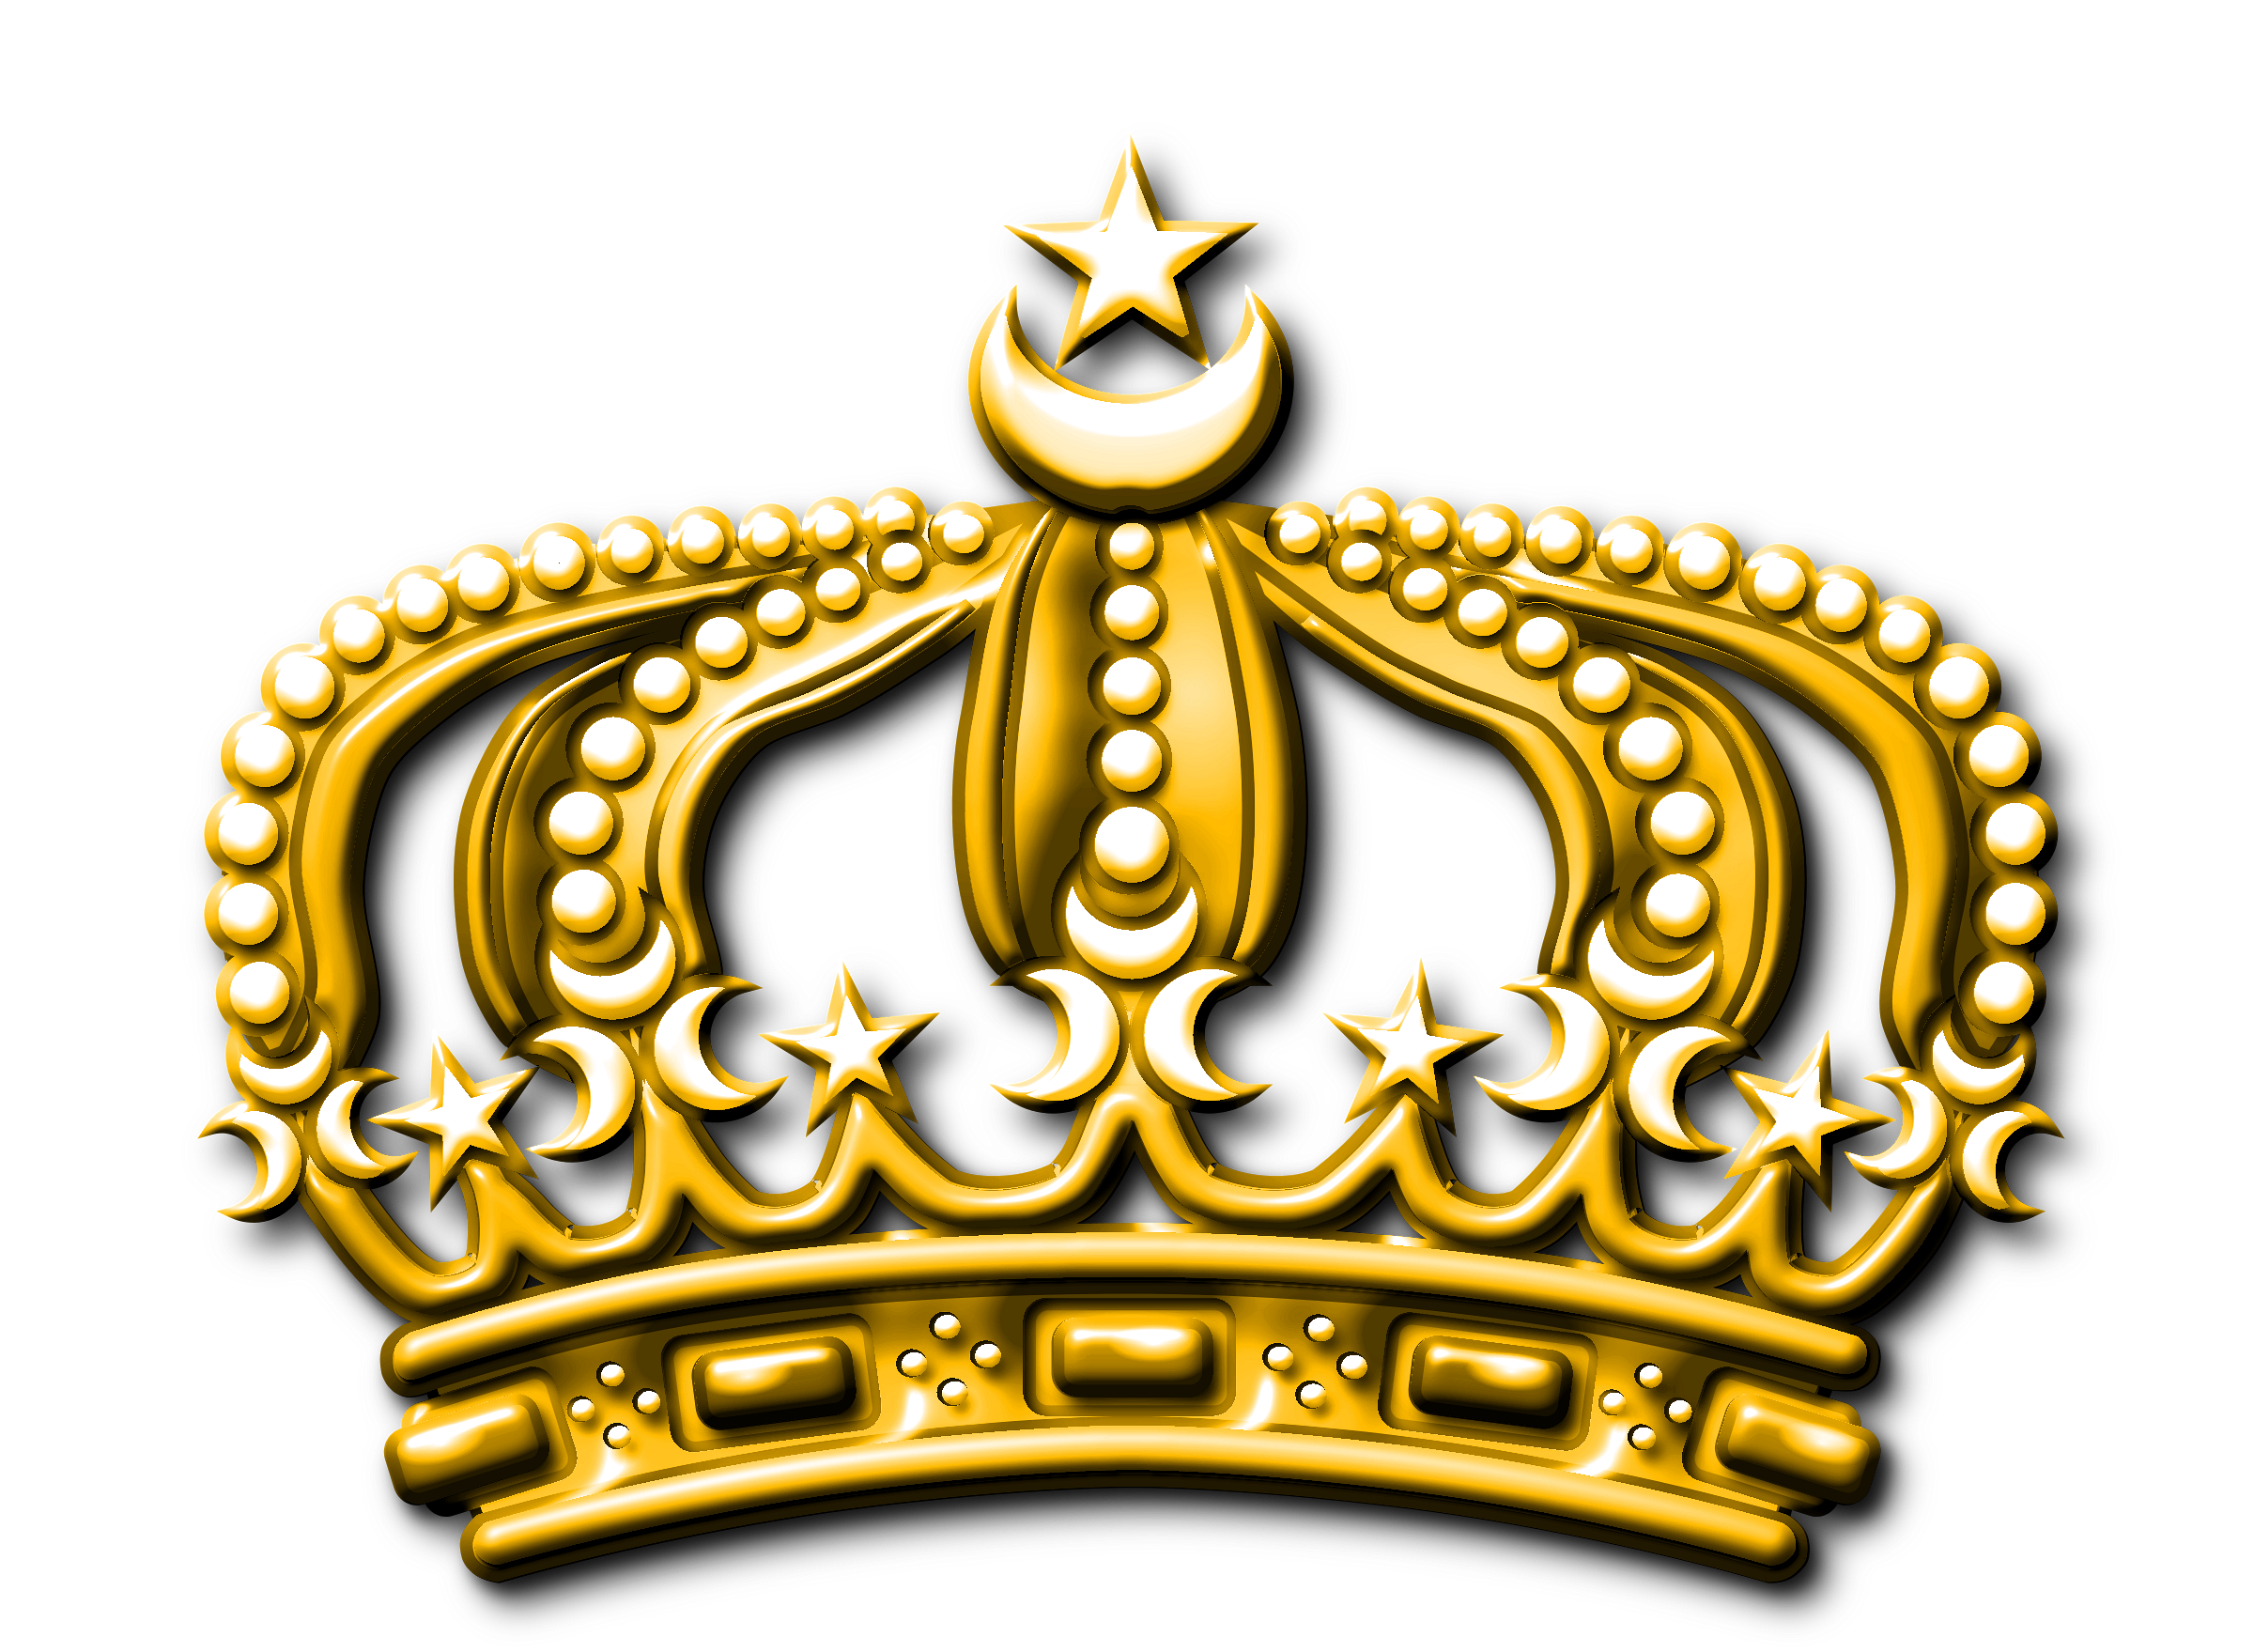 Gold crown vector png. Free kings logo download